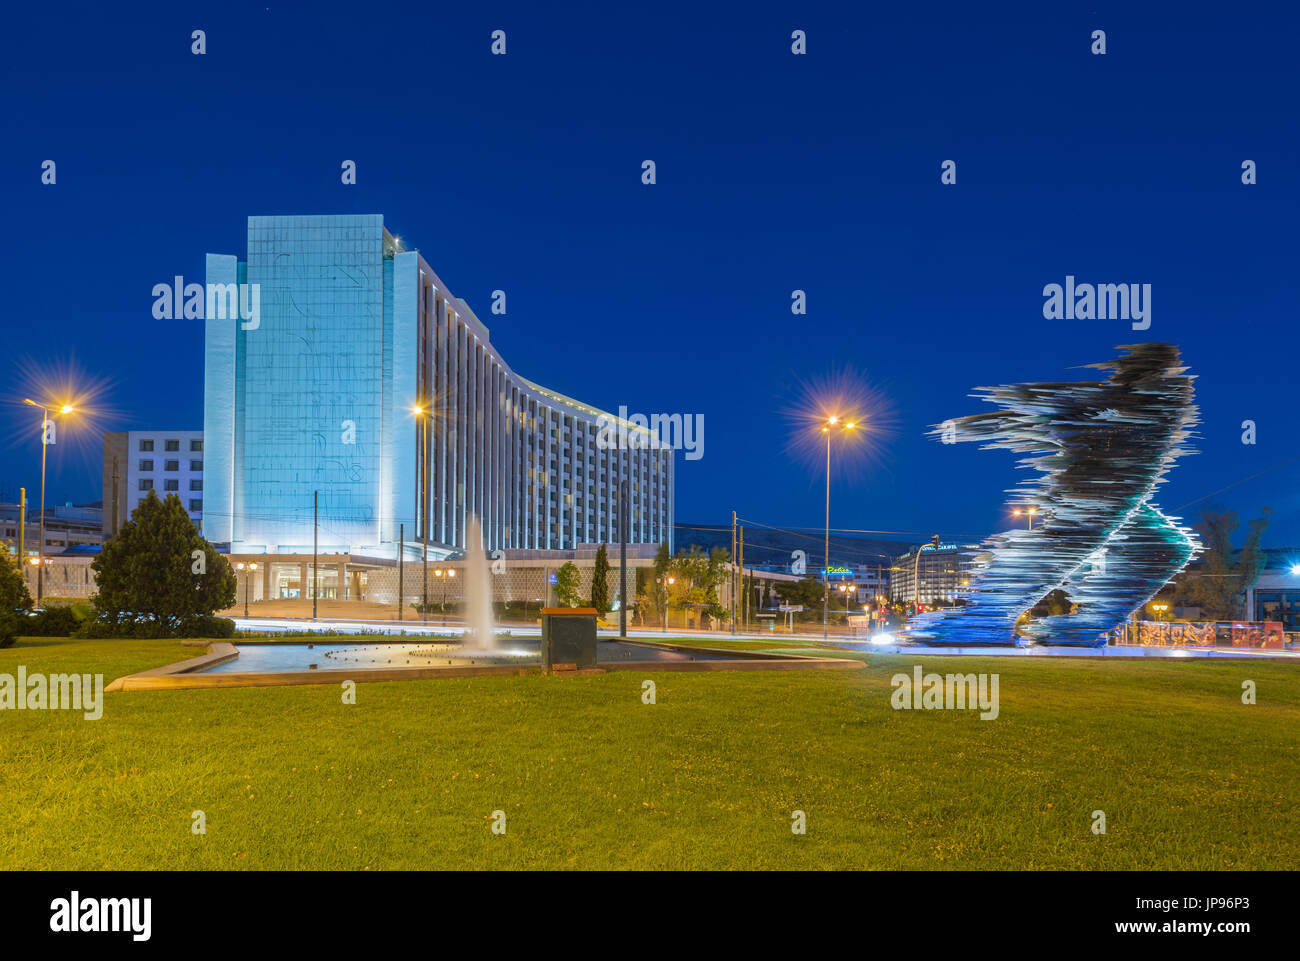 Statue of runner in front of hotel Hilton in Evangelismos in central Athens - Stock Image